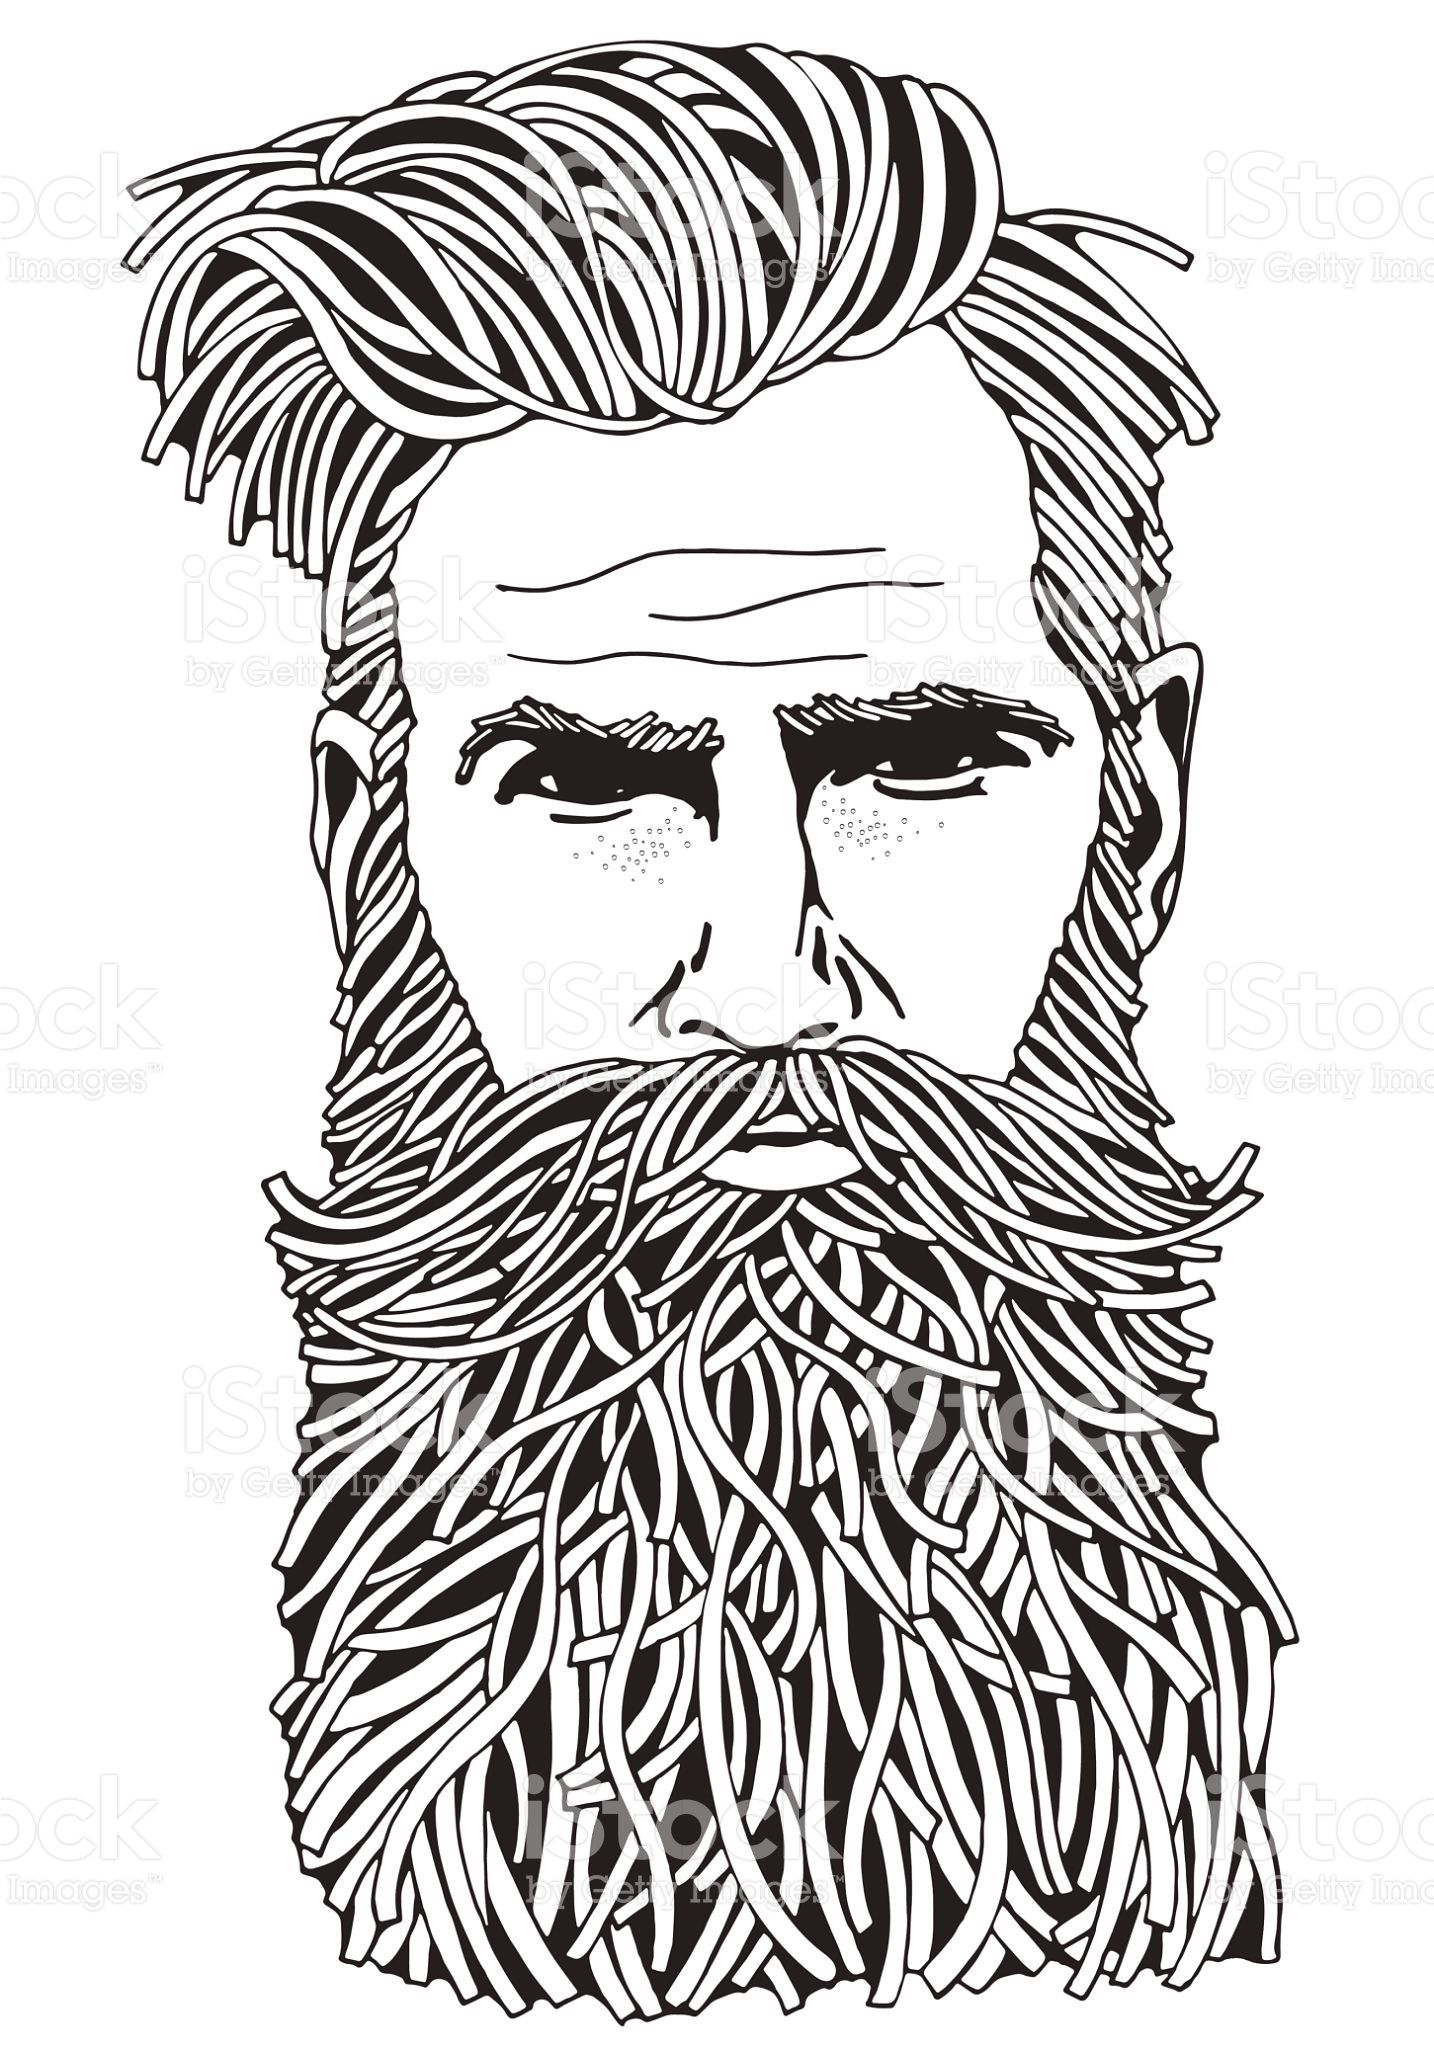 Bearded Hipster Man Coloring Book Page For Adult Hand Drawn